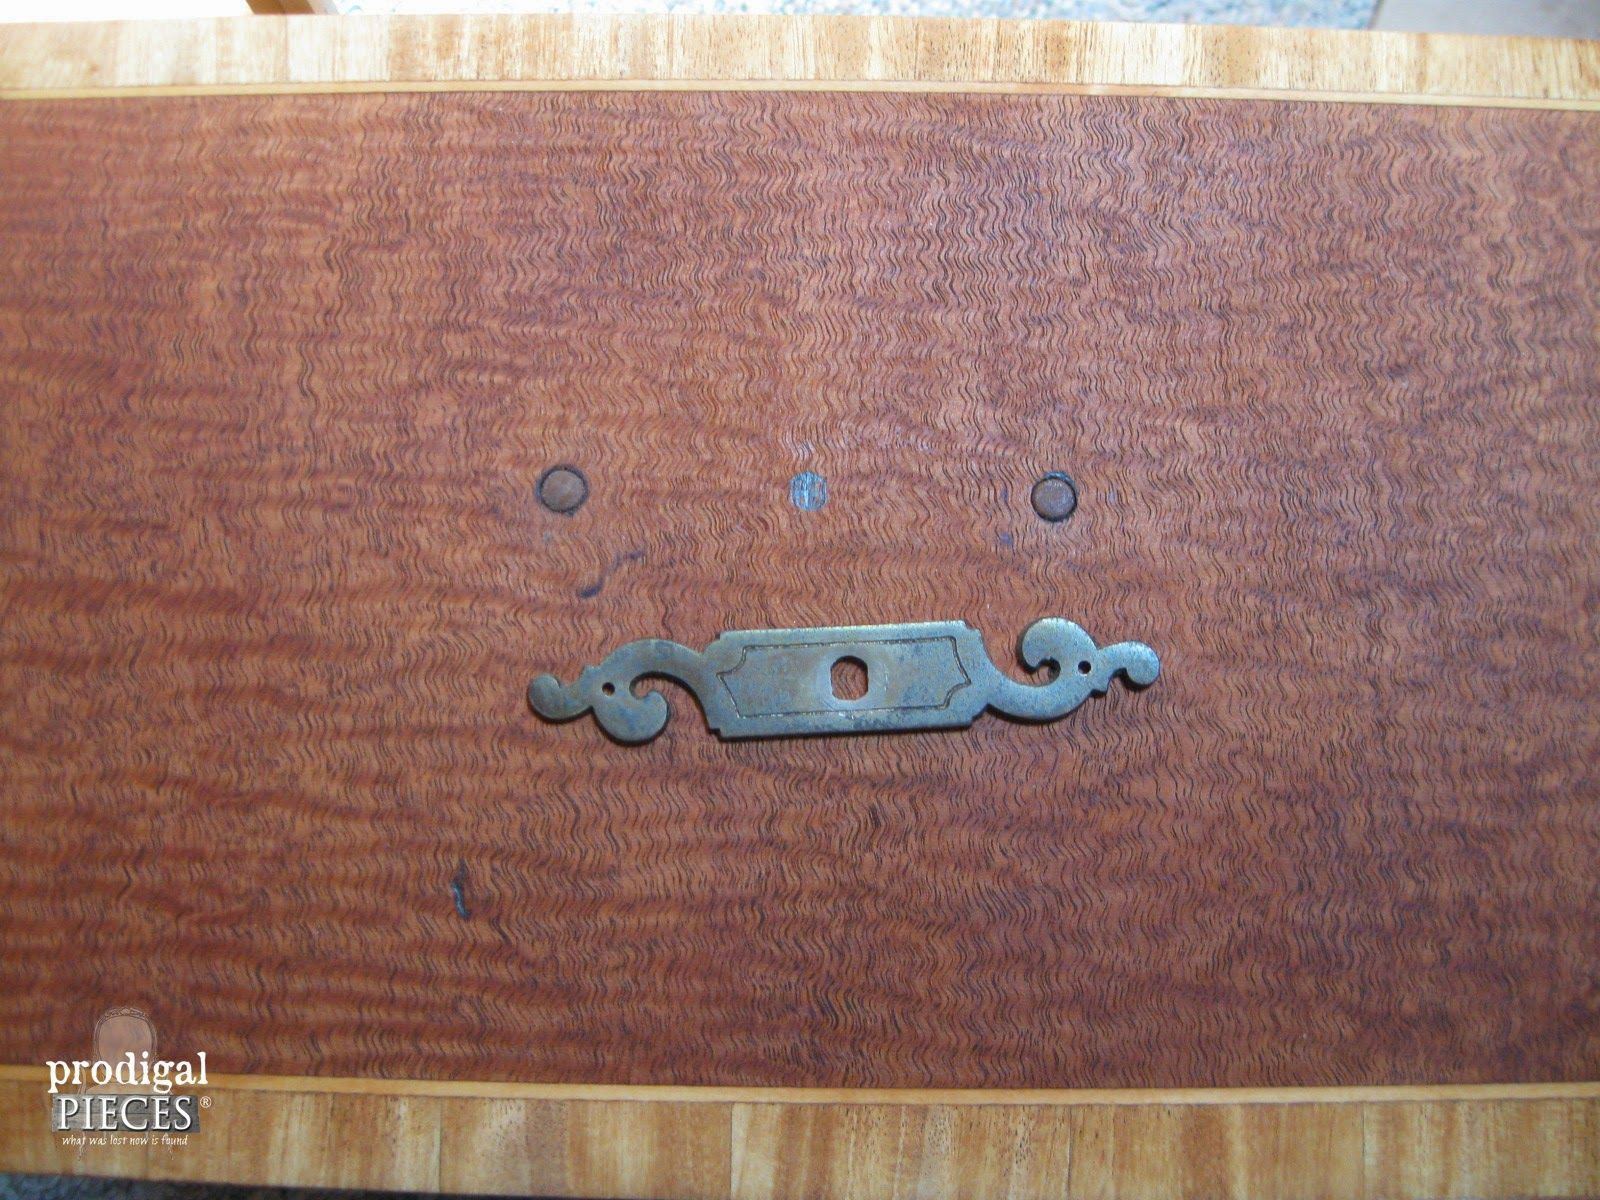 Antique Drawer Pull Back Plate| Prodigal Pieces | www.prodigalpieces.com